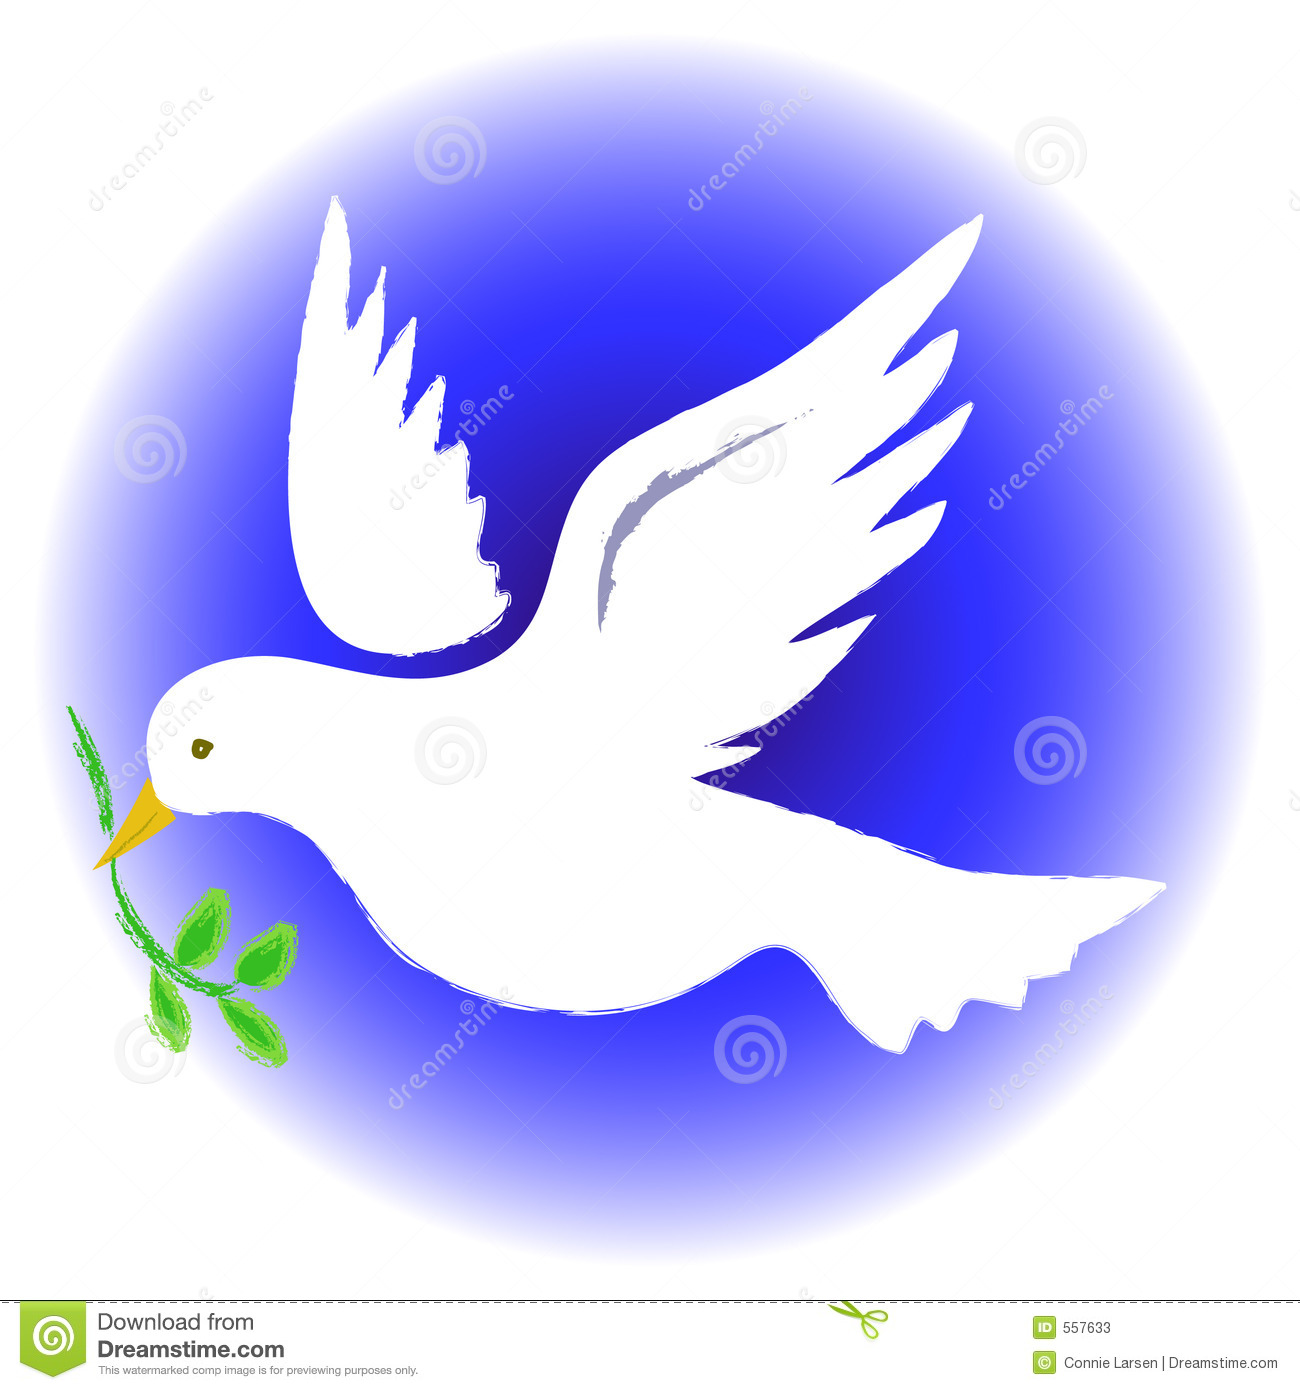 Illustration of a dove carrying an olive branch...symbolizing peace.